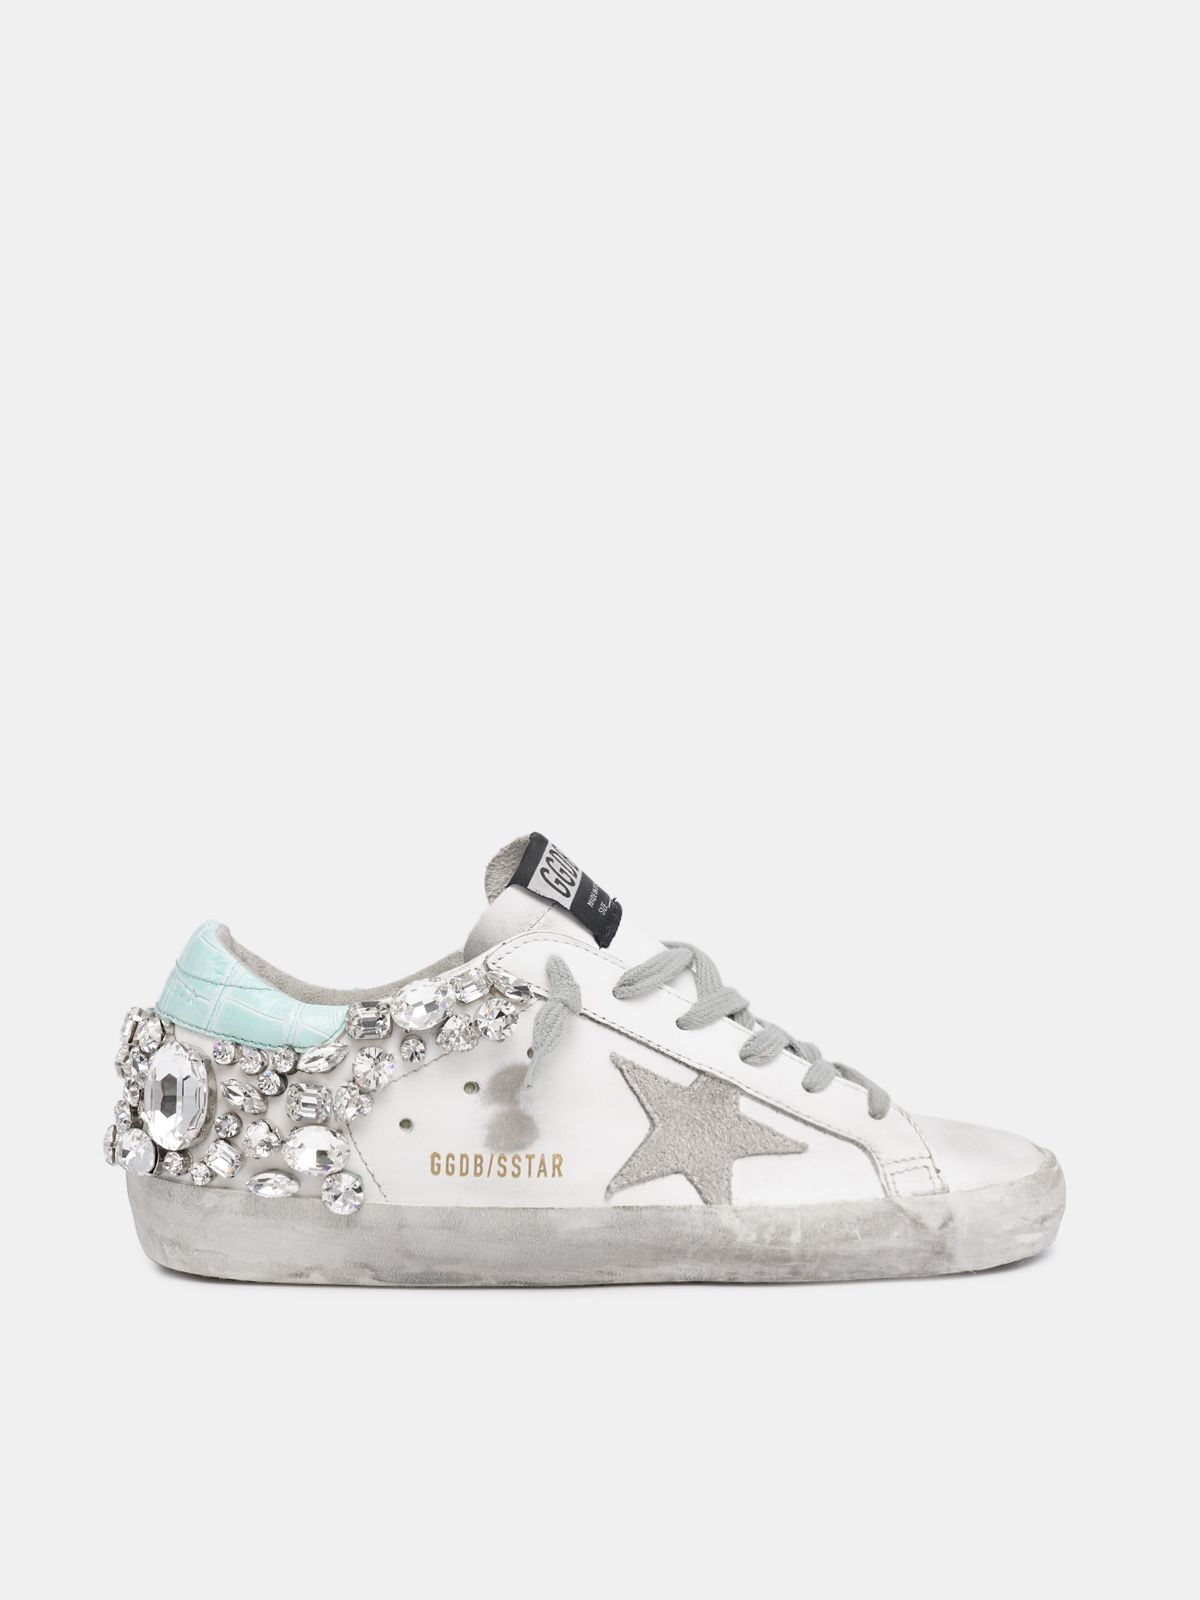 Super-Star sneakers with crystals on the back